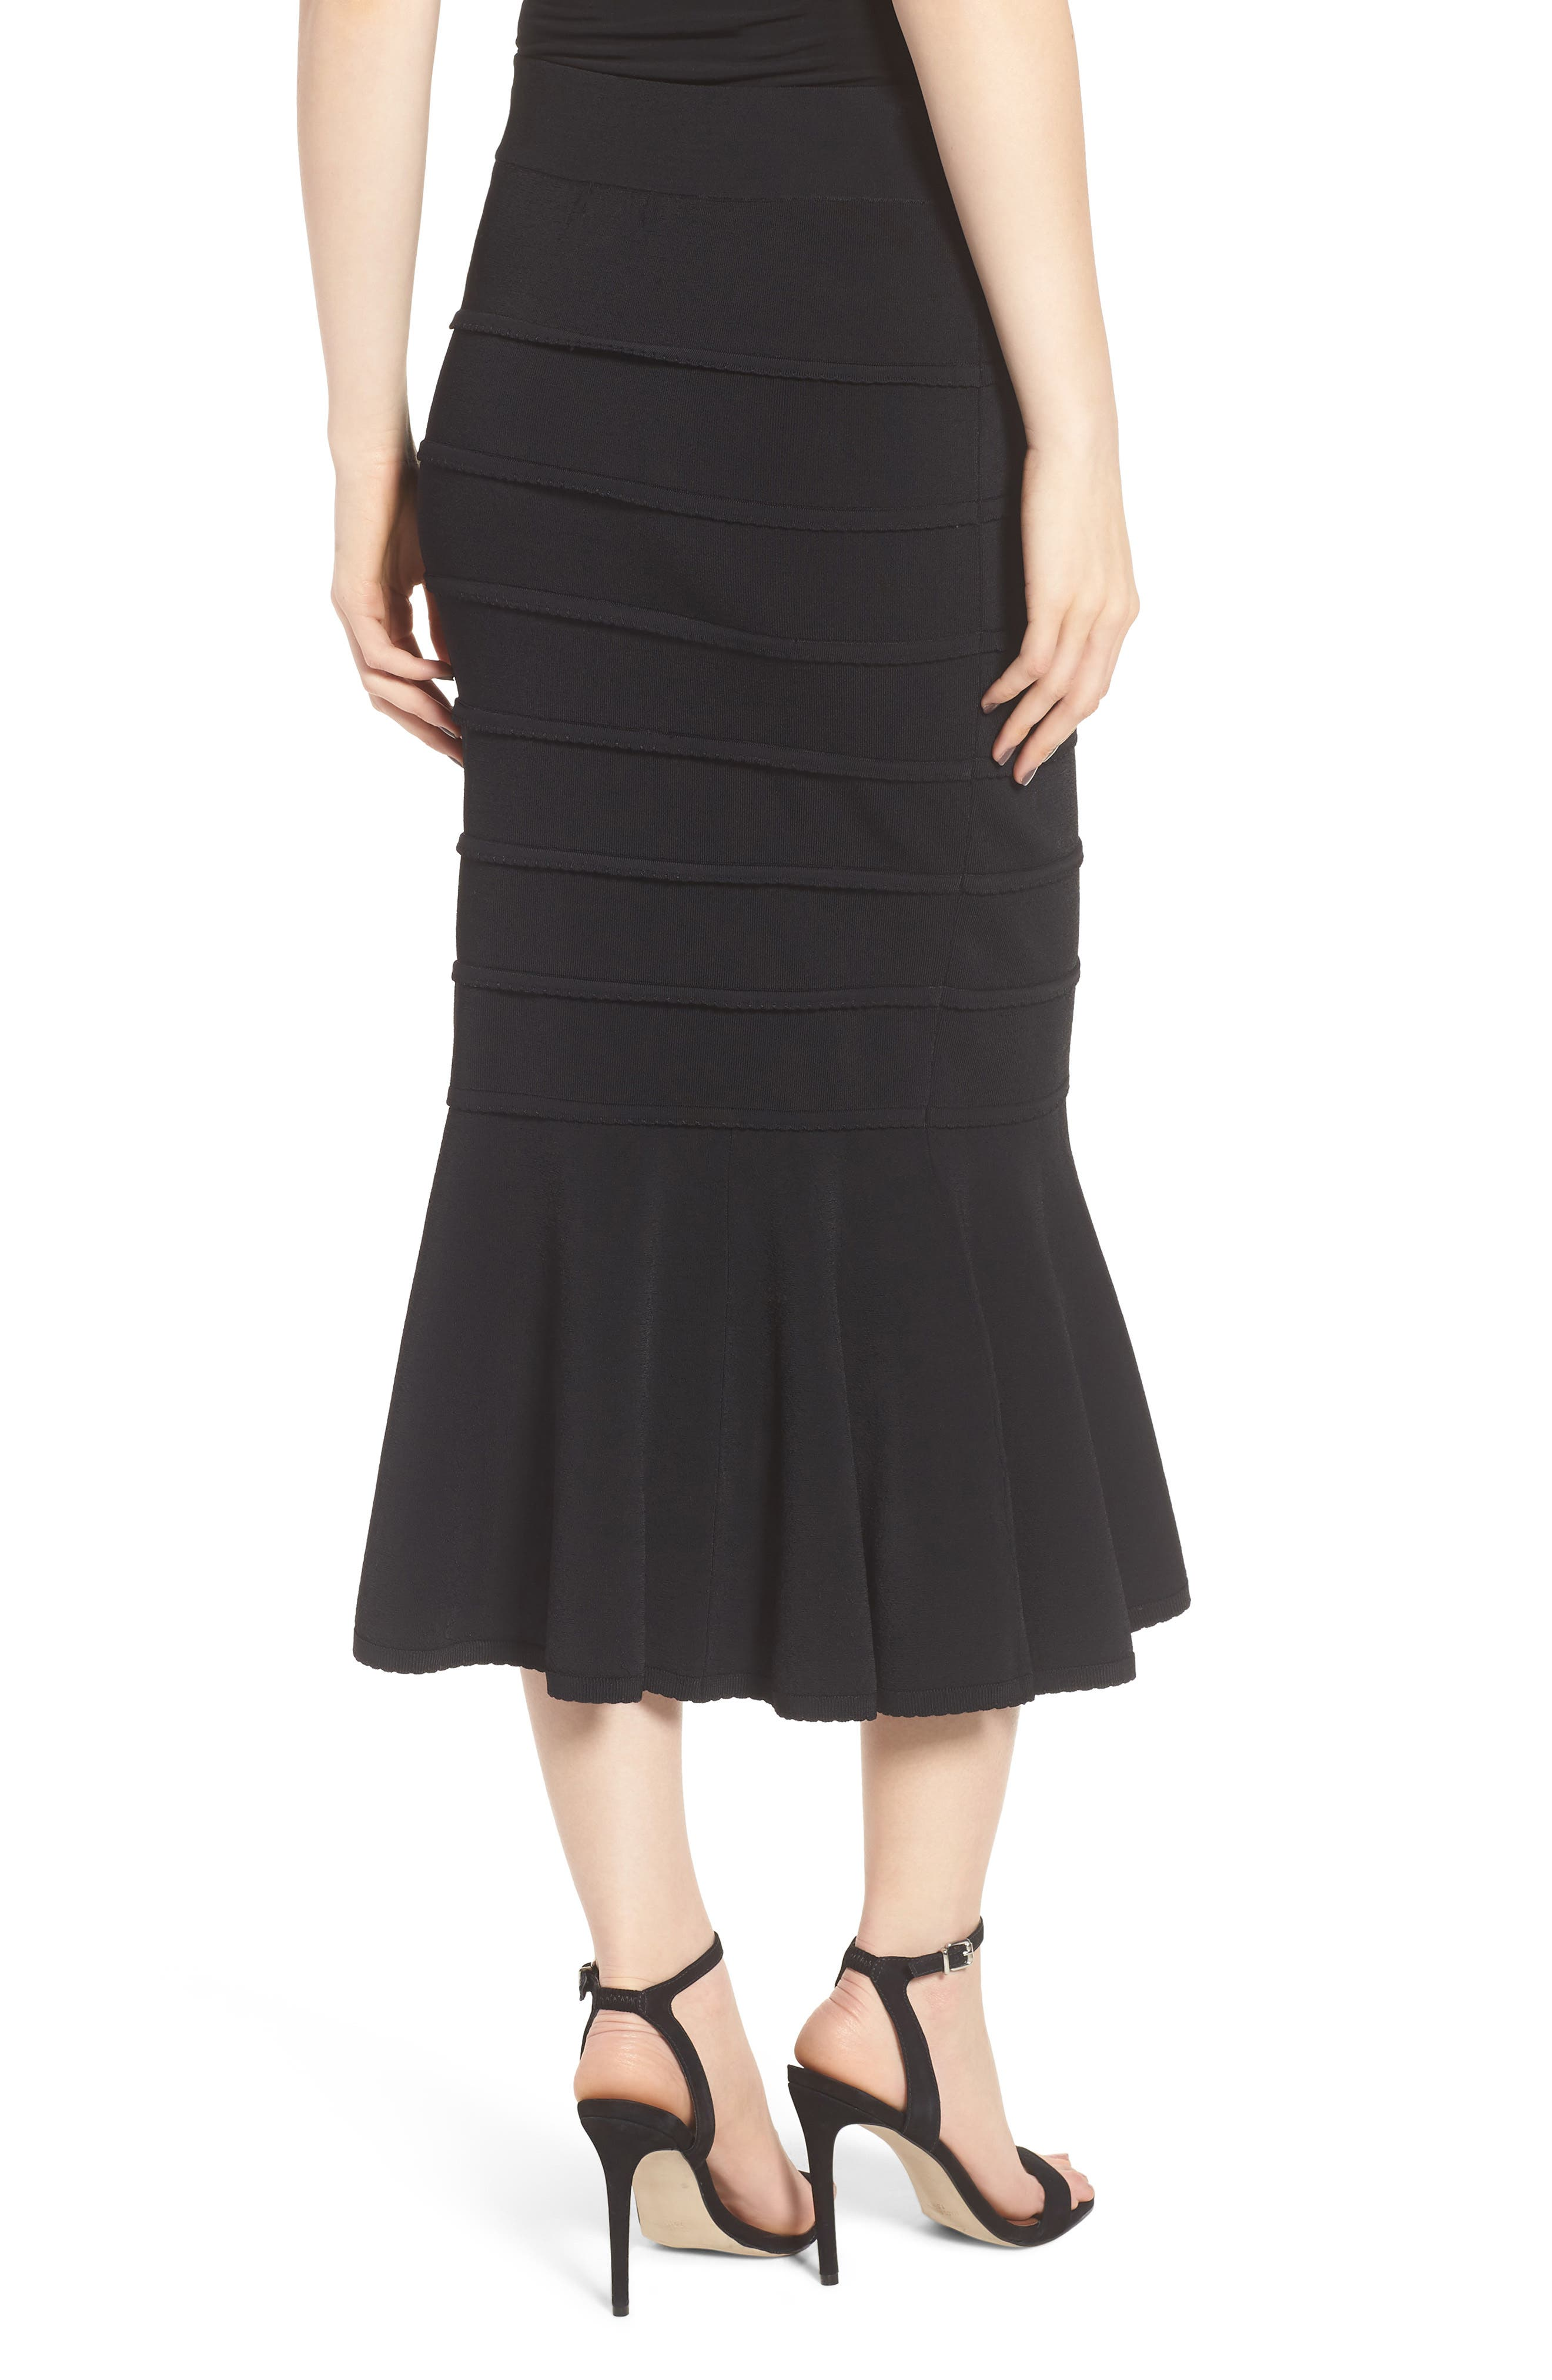 CHELSEA28,                             Trumpet Skirt,                             Alternate thumbnail 2, color,                             001